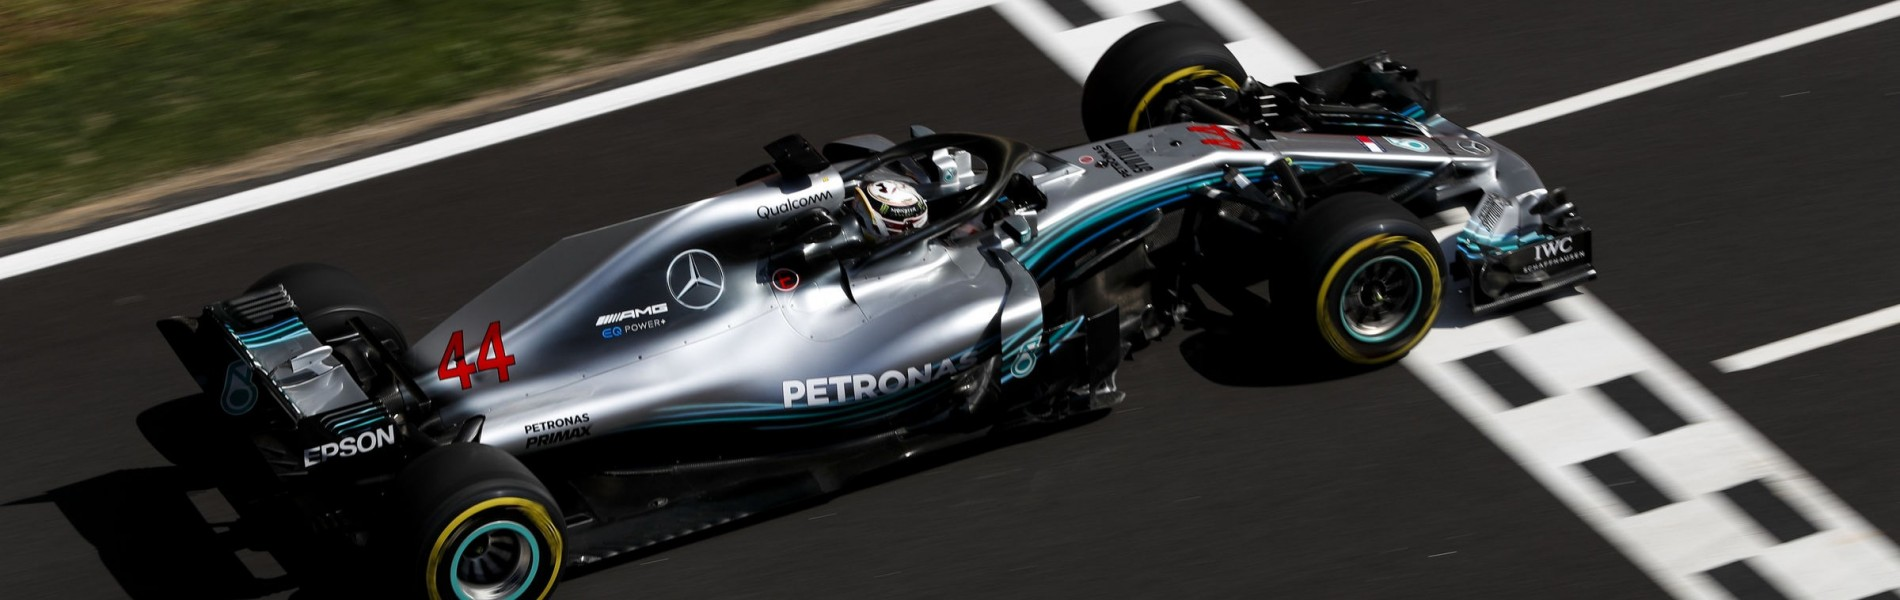 Friday images from the 2018 Spanish Grand Prix